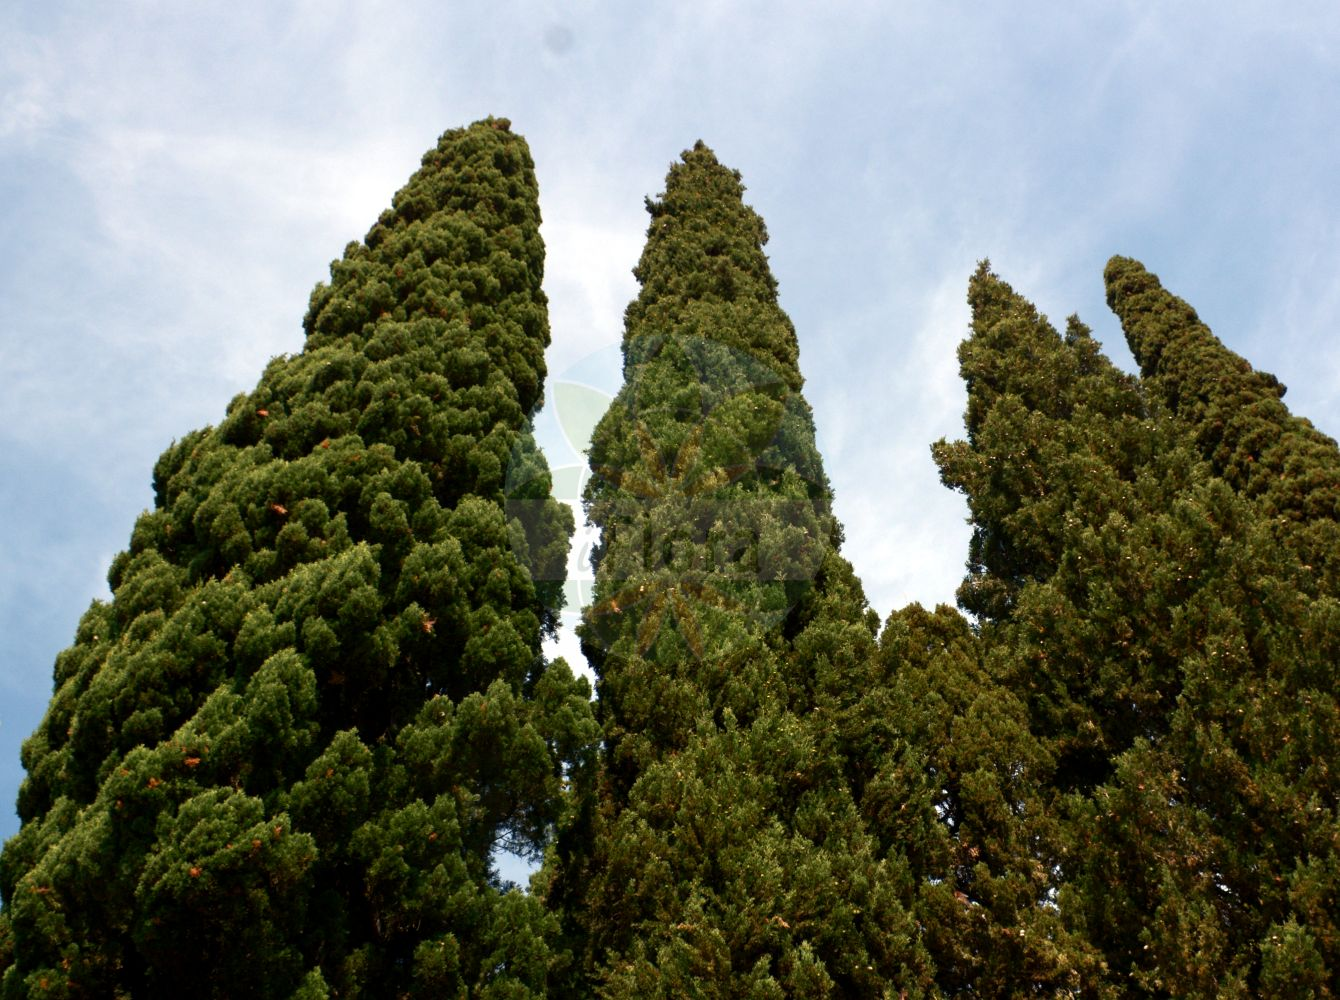 Foto von Cupressus sempervirens. Das Foto wurde in Hanbury, Ventimiglia, Liguria, Italien aufgenommen. ---- Photo of Cupressus sempervirens.The picture was taken in Hanbury, Ventimiglia, Liguria, Italy.(Cupressus sempervirens,Cupressus fastigiata,Cupressus horizontalis,Cupressus pyramidalis,var. pyramidalis,Cupressus,Cupressaceae,Zypressengewaechse,Cypress family)